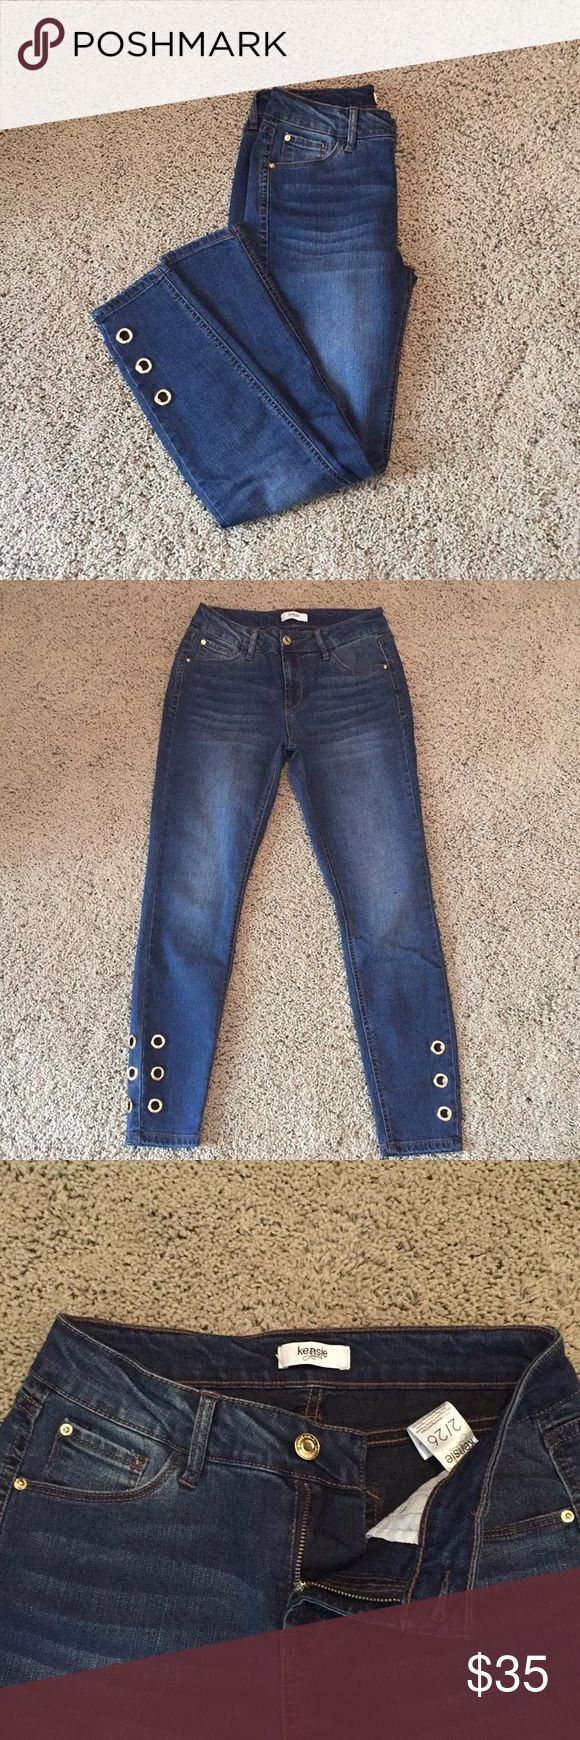 Kensie jeans These size 2/26 Kensie jeans are in perfect unworn condition, took the tags off and never ended up wearing them! So comfortable and perfect fit for my petite legs! Grommets at the bottom add a cute style to your typical pair of jeans! Kensie Jeans Skinny